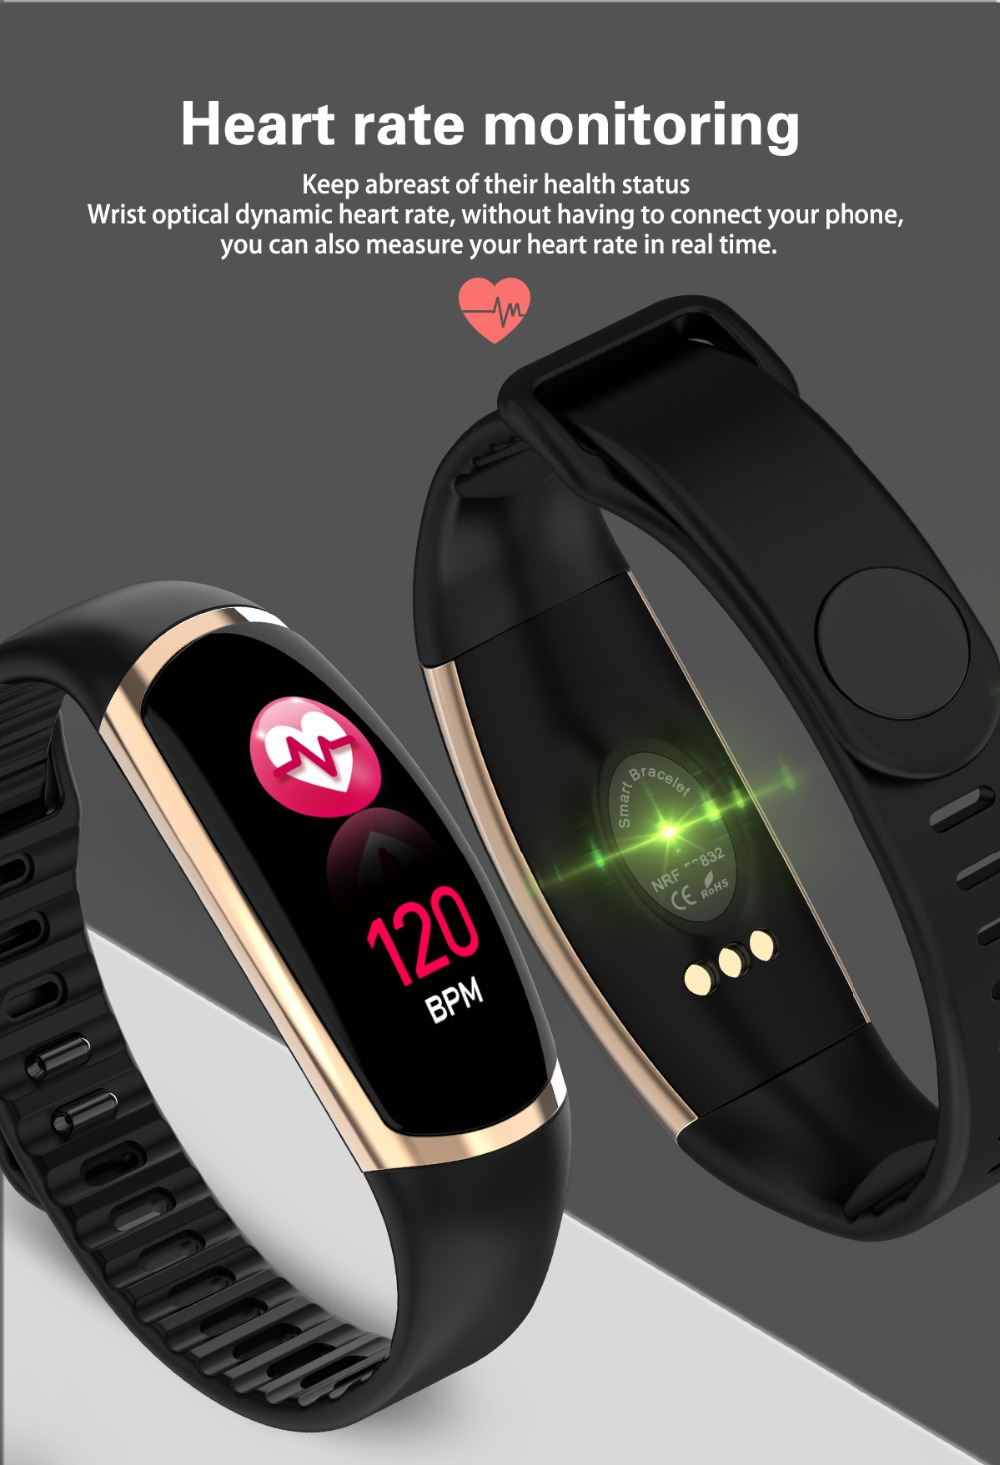 US $18 27 37% OFF|Smart Bracelet R16 Android IOS Heart Rate Band Sleep  Monitor Blood Pressure Fitness Tracker Waterproof Color Screen Sport  Band-in